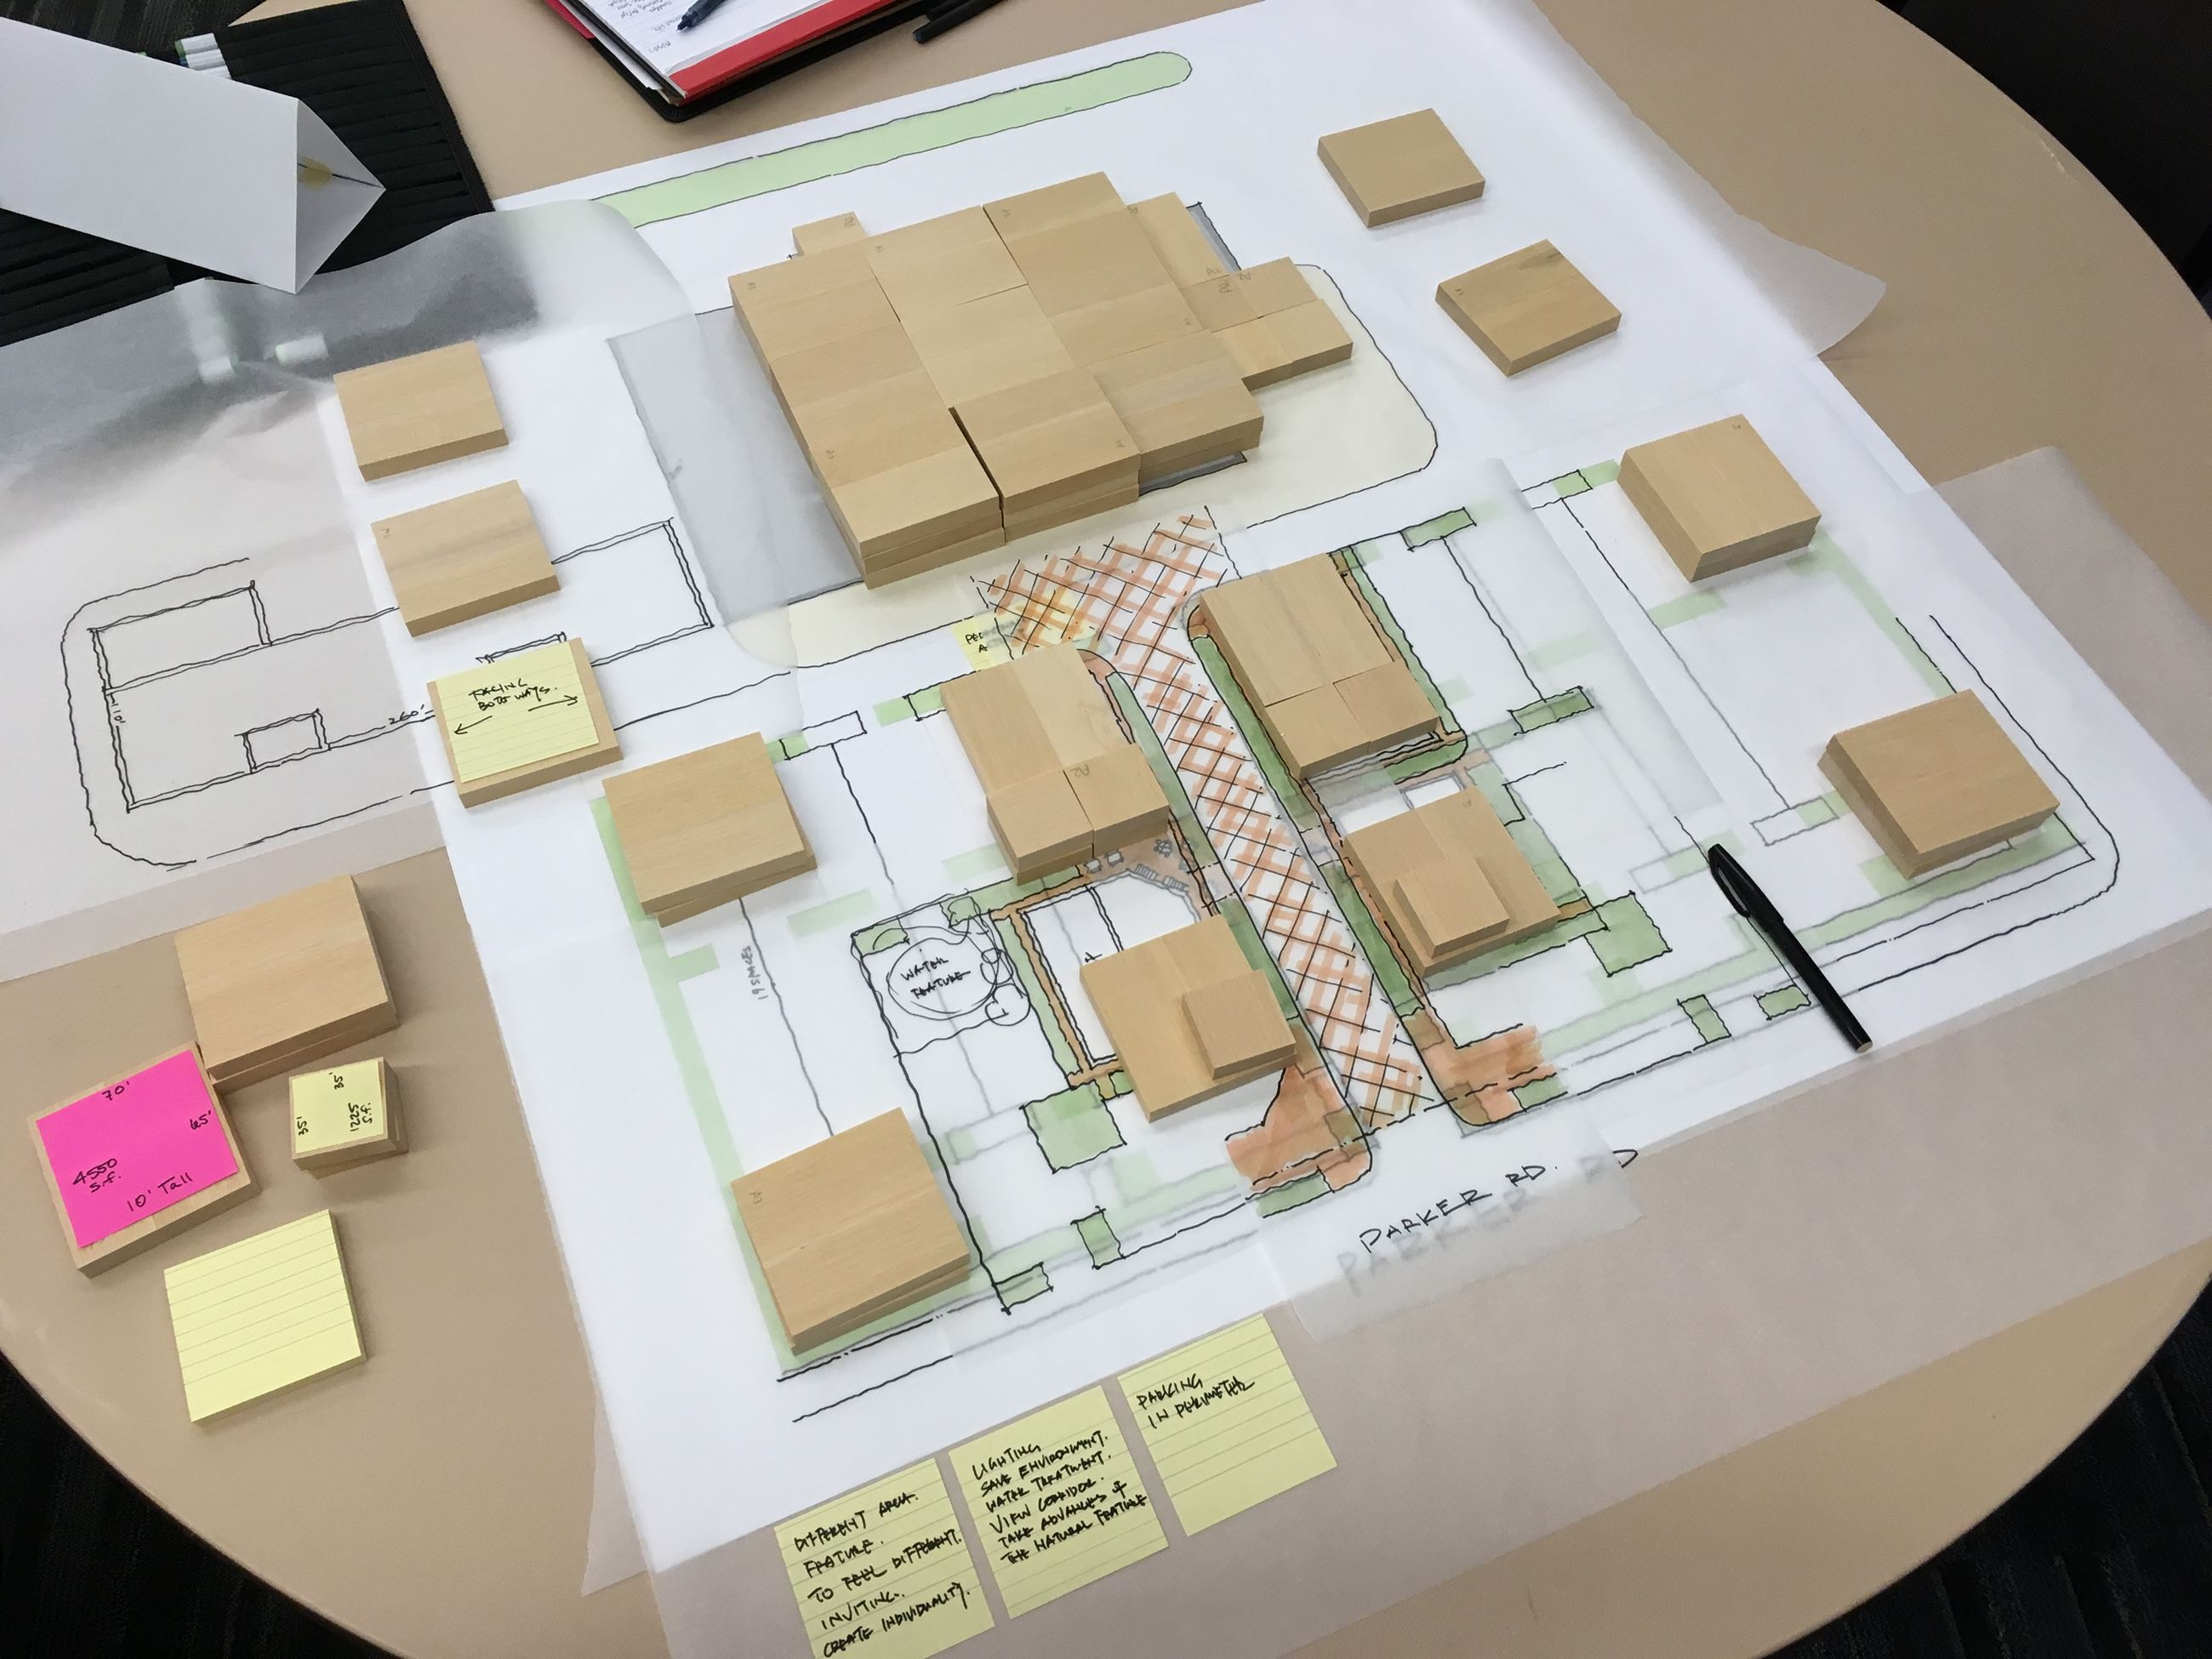 Aug. 14 Workshop #3 Photo